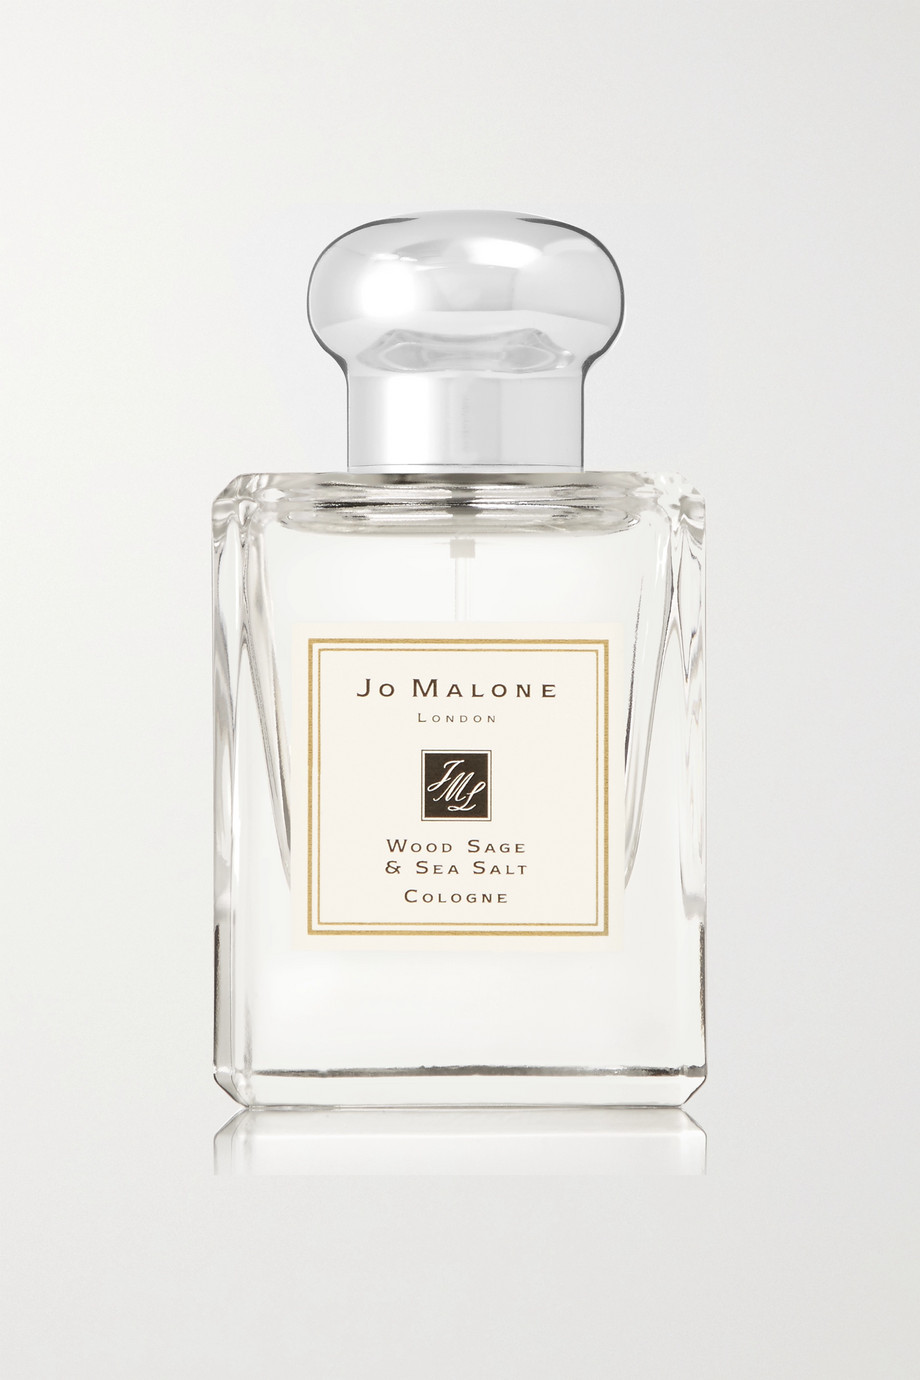 Jo Malone London Wood Sage & Sea Salt Cologne, 50ml